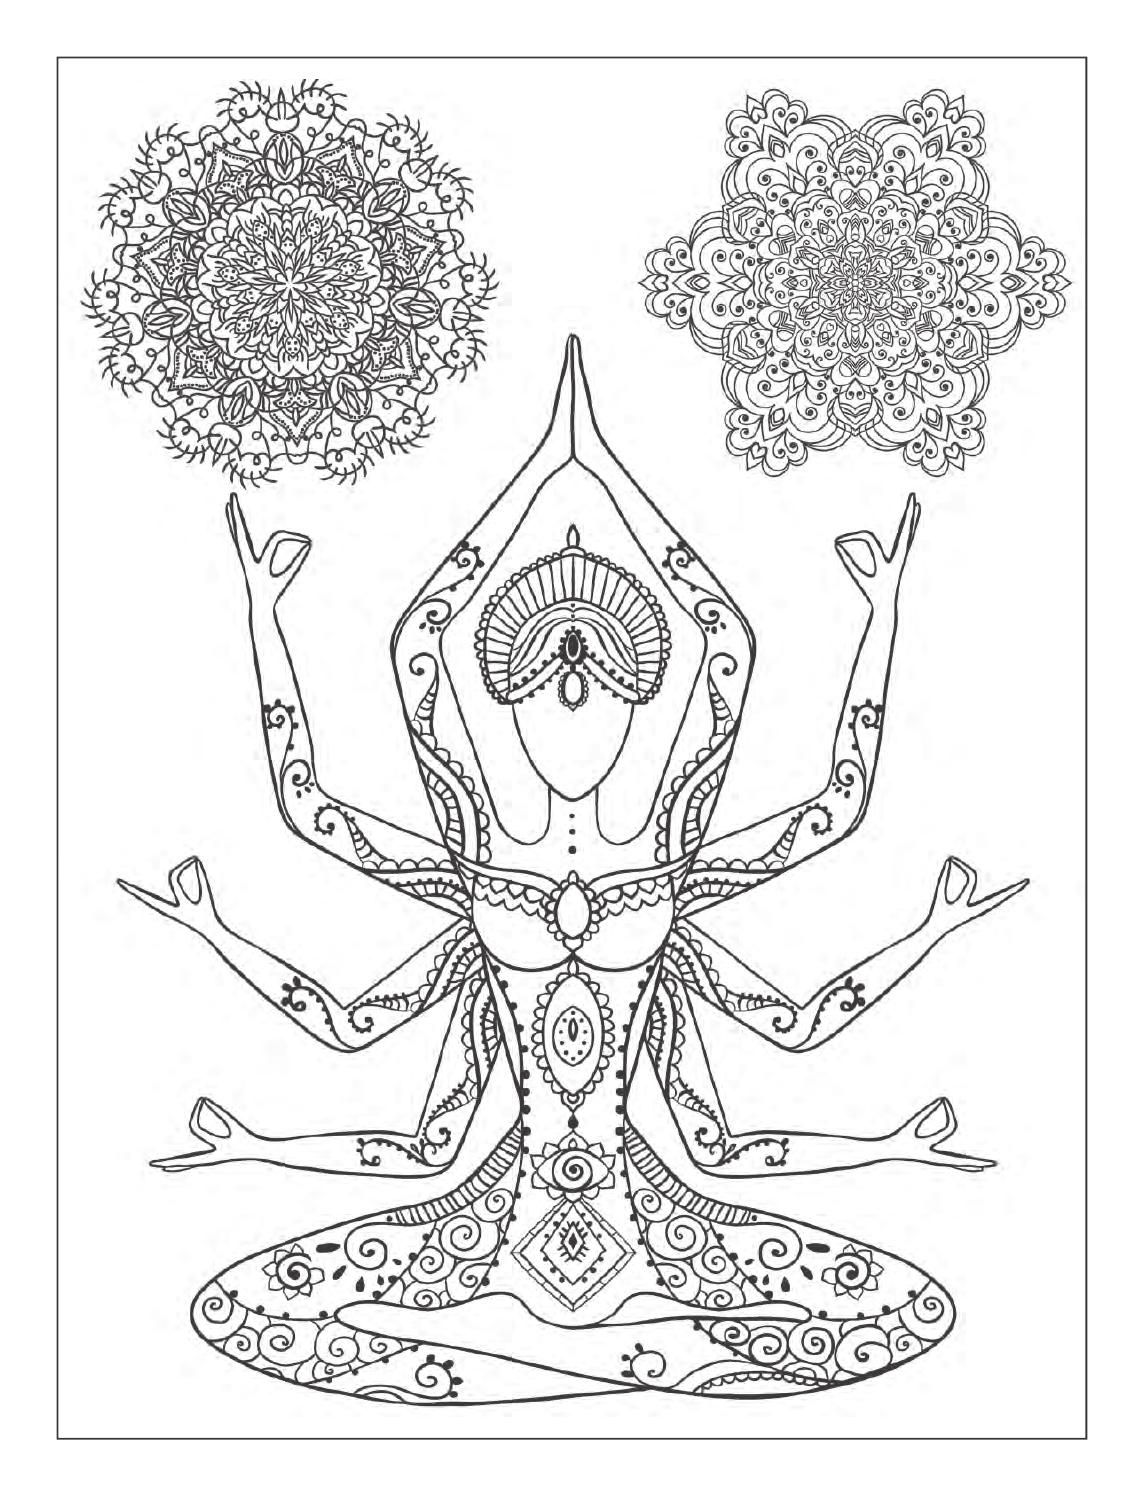 Yoga And Meditation Coloring Book For Adults With Yoga Poses And Mandalas Mandala Coloring Books Coloring Books Coloring Pages